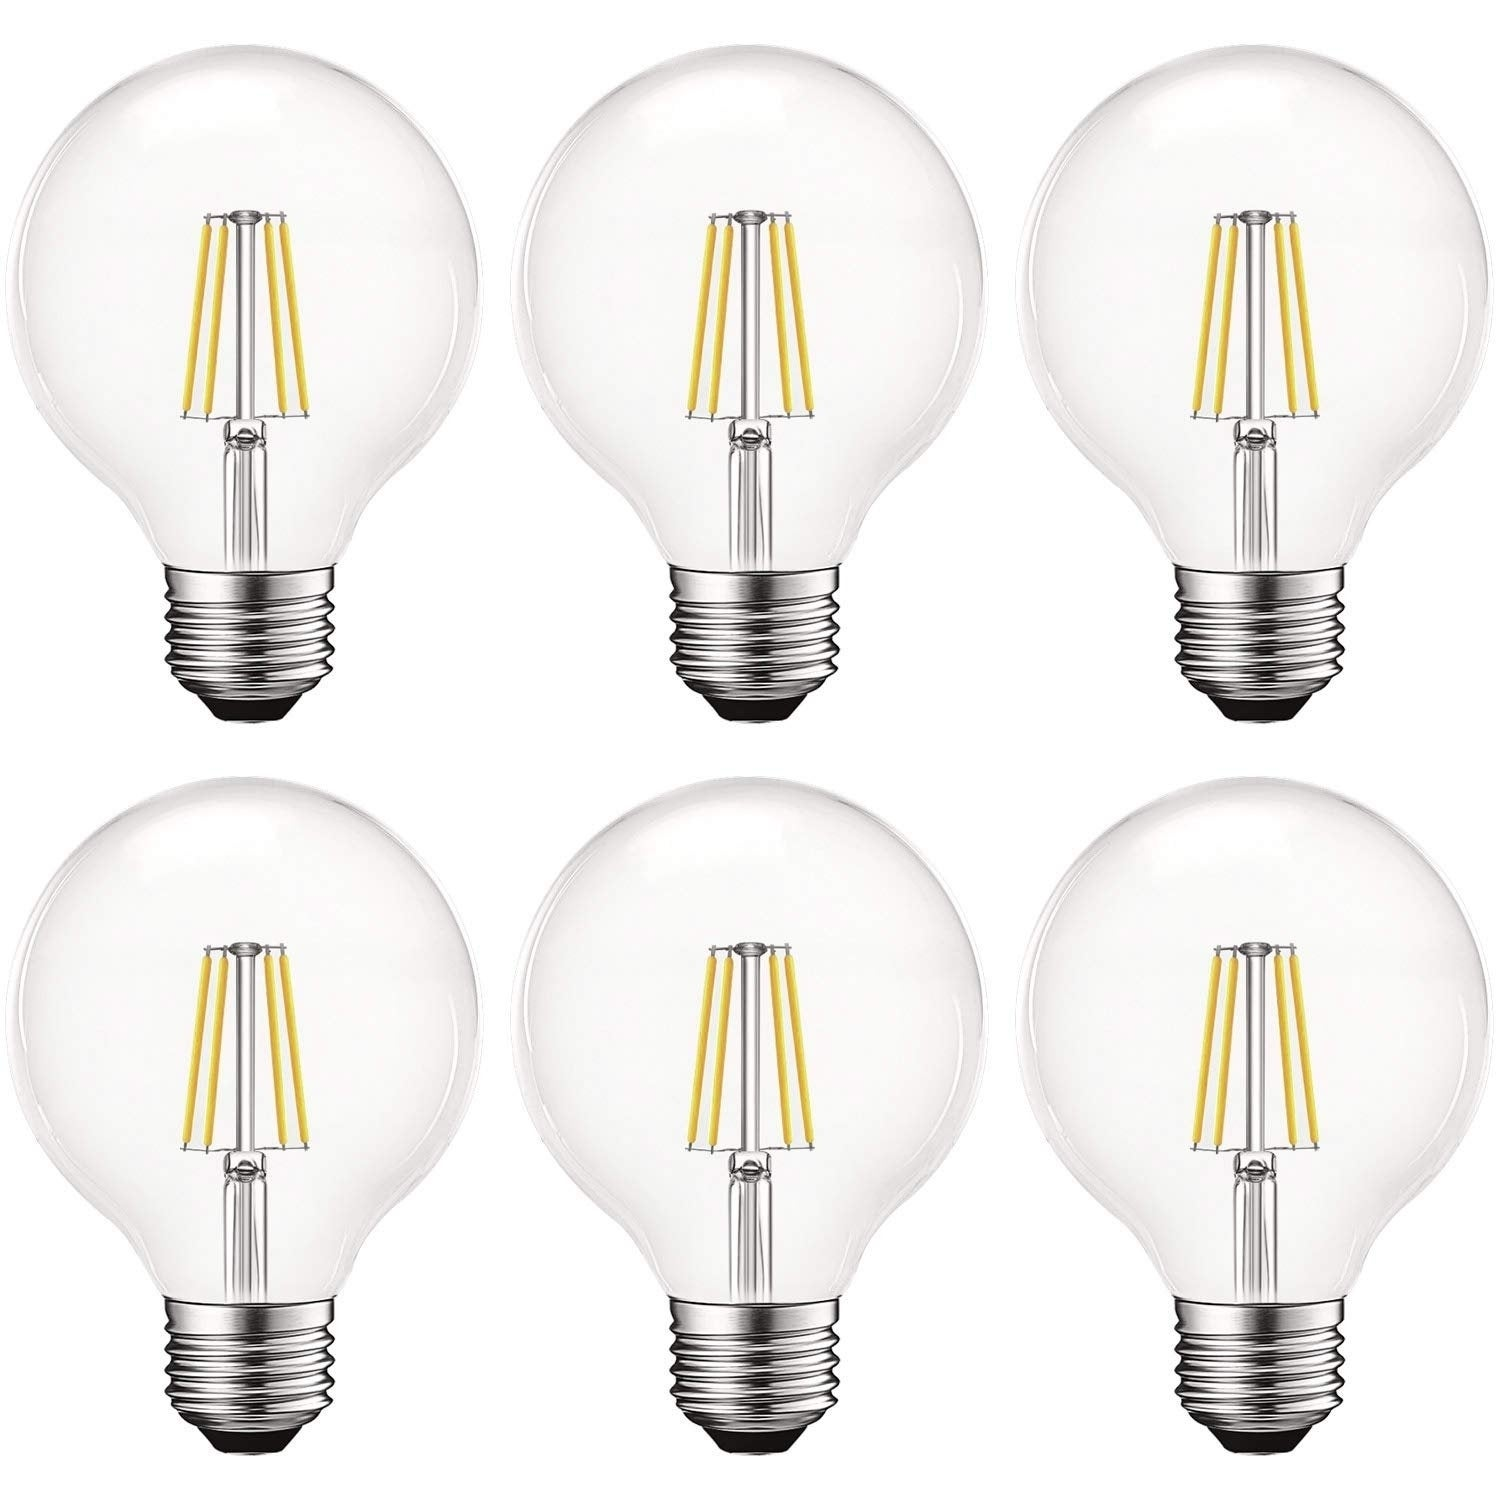 550 Lumens 6 Pack Luxrite Vintage G25 LED Globe Light Bulbs 60W Equivalent Clear Glass E26 Standard Base 5000K Bright White Dimmable Round Edison Bulb 5W LED Filament Bulb